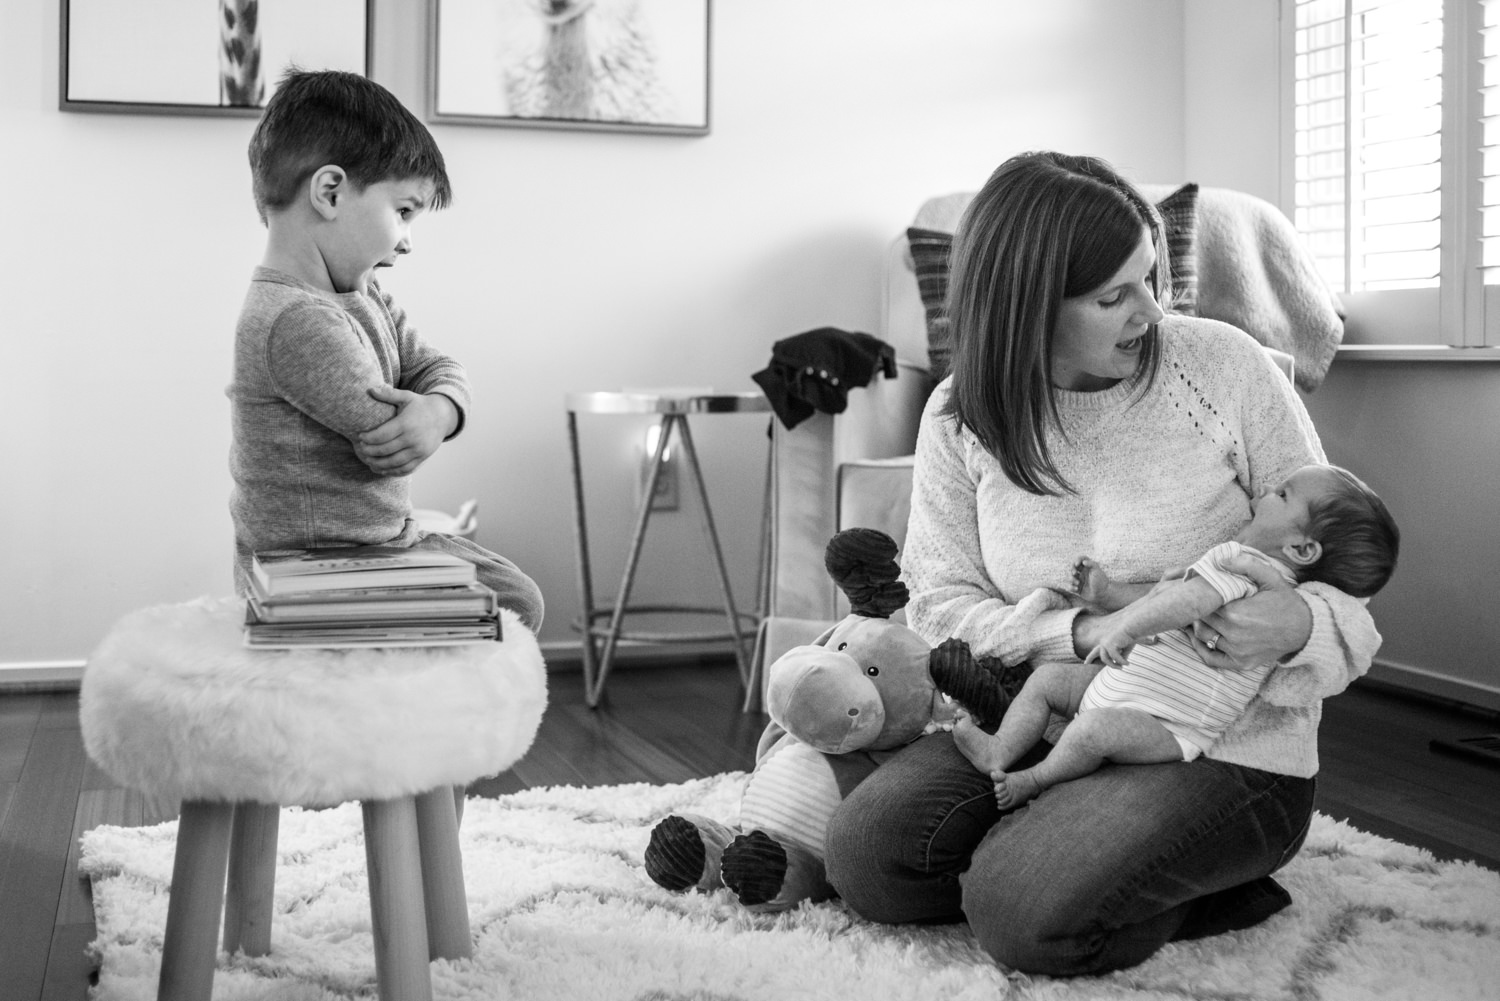 brother plays school with mom and new baby brother